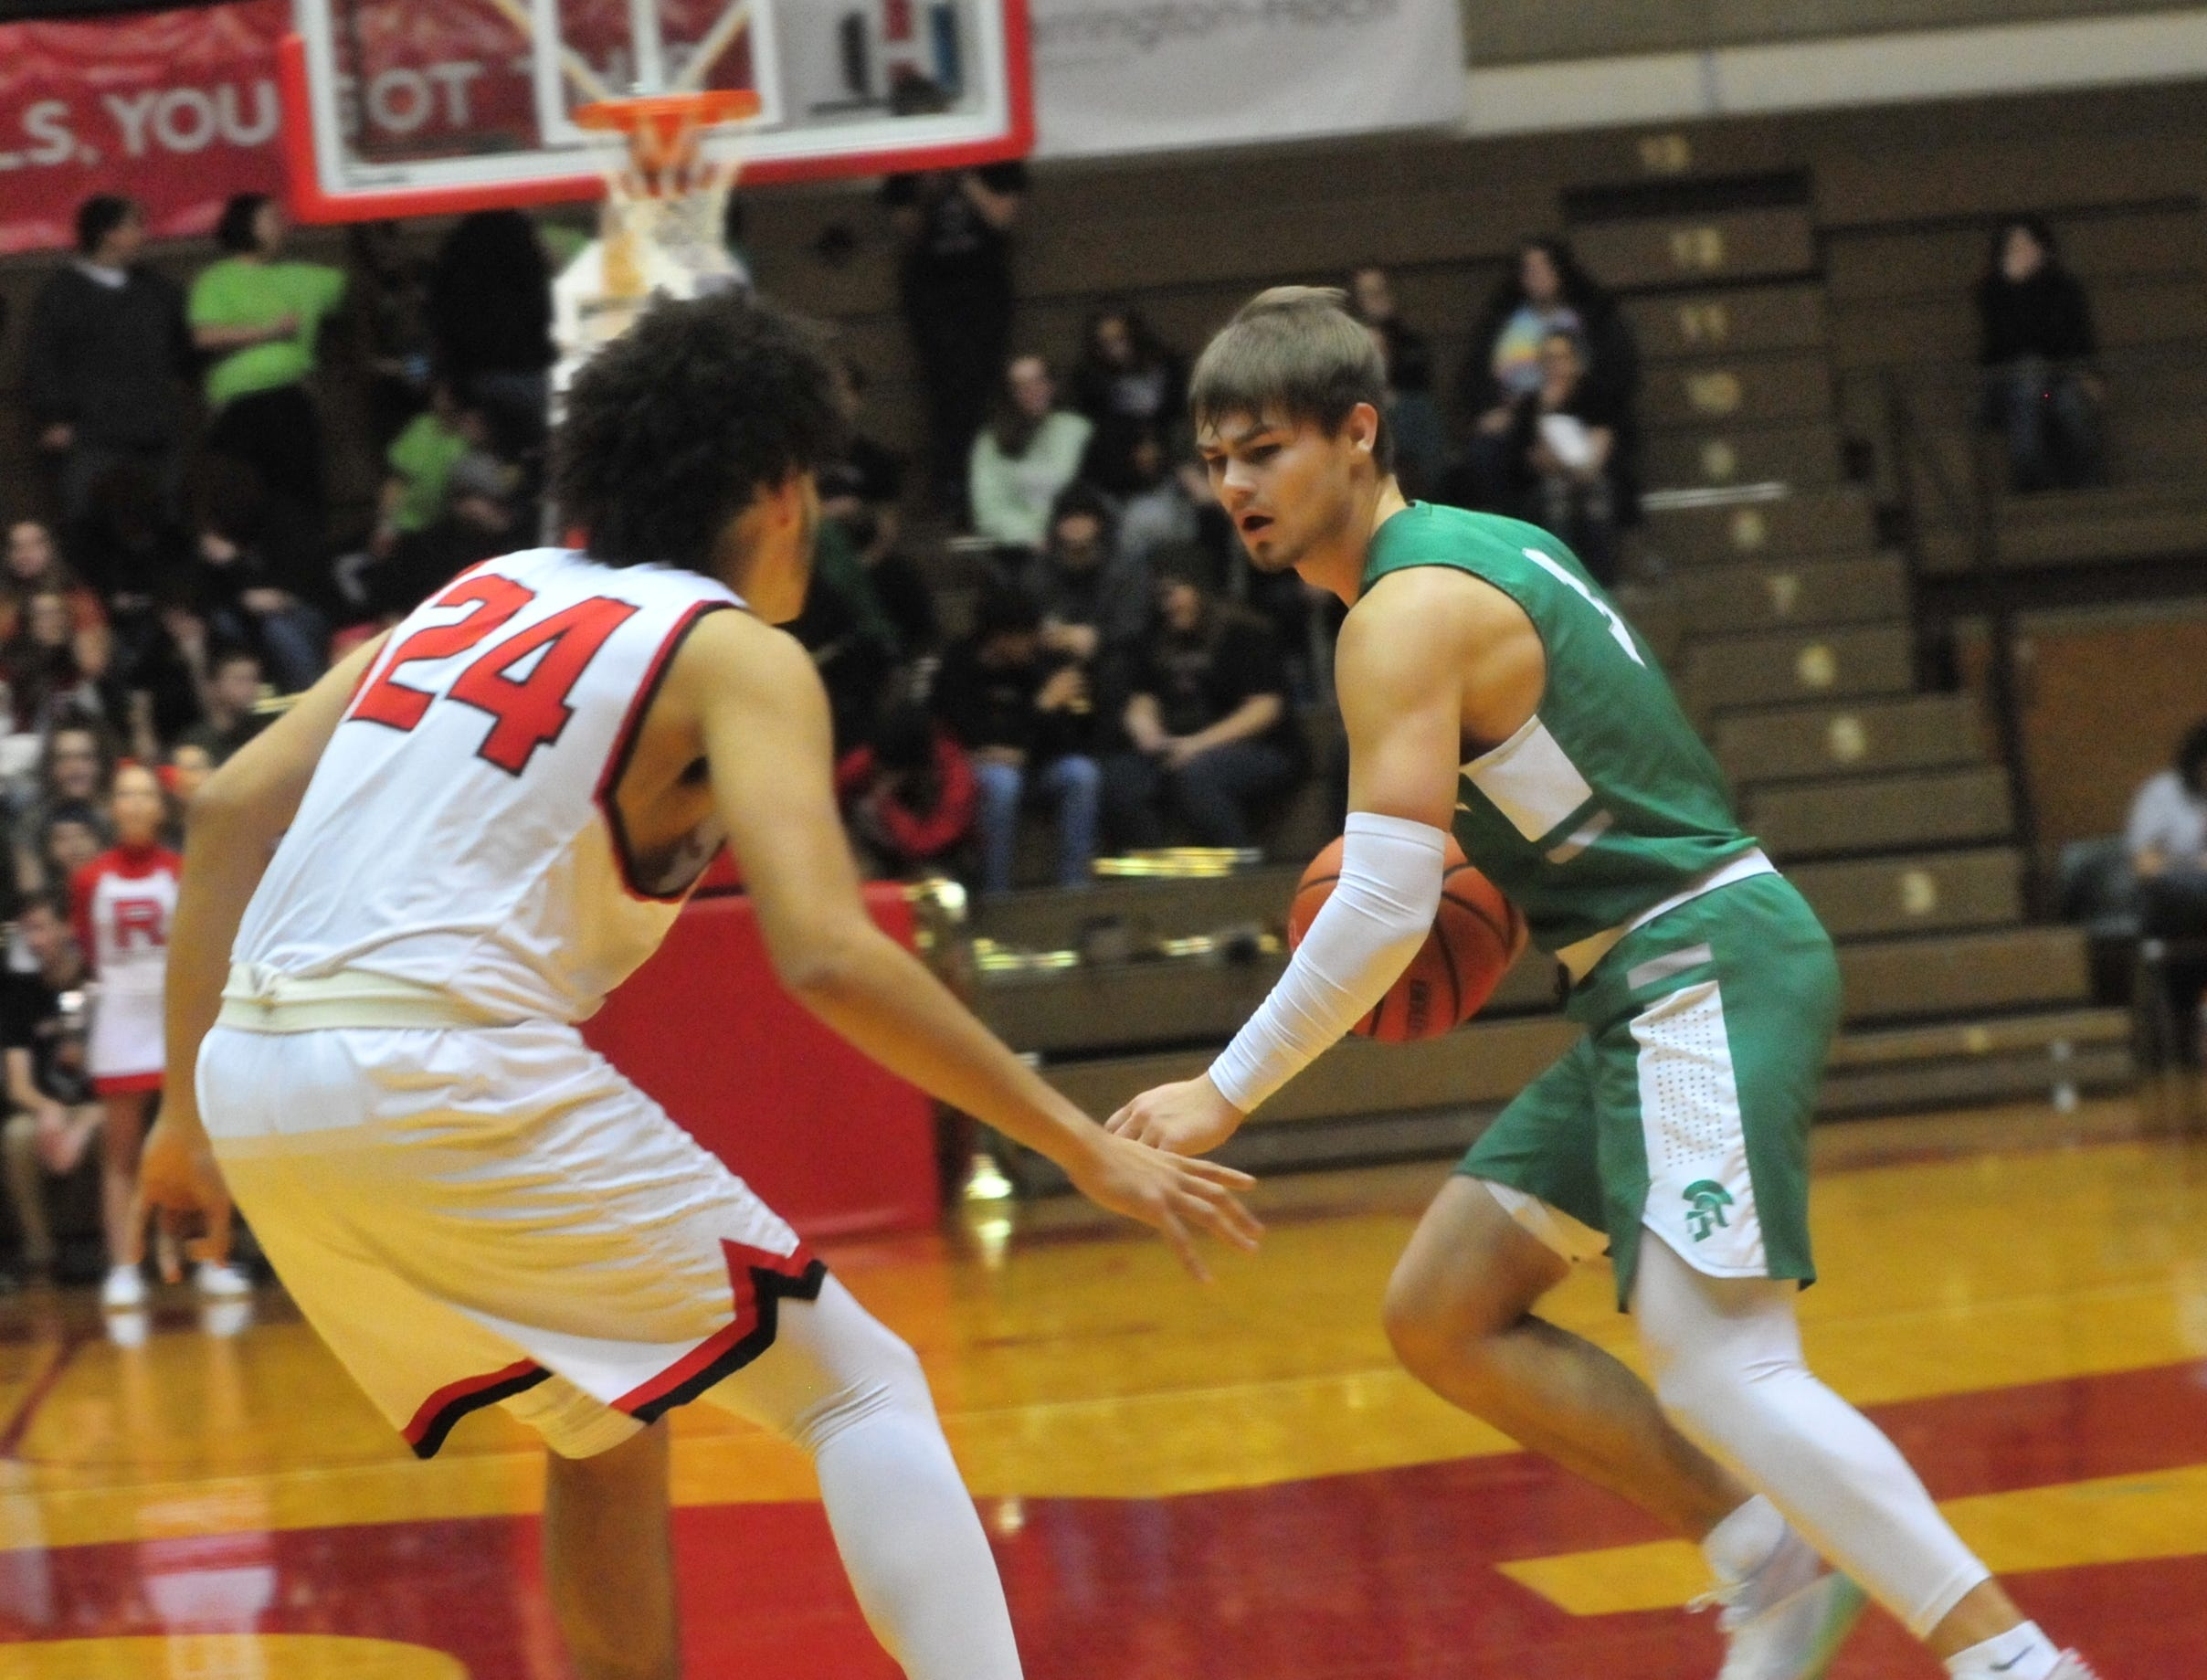 New Castle's Luke Bumbalough (3) moves the ball against Richmond's Jordan Frye during a boys basketball game at Tiernan Center Friday, Jan. 4, 2019.